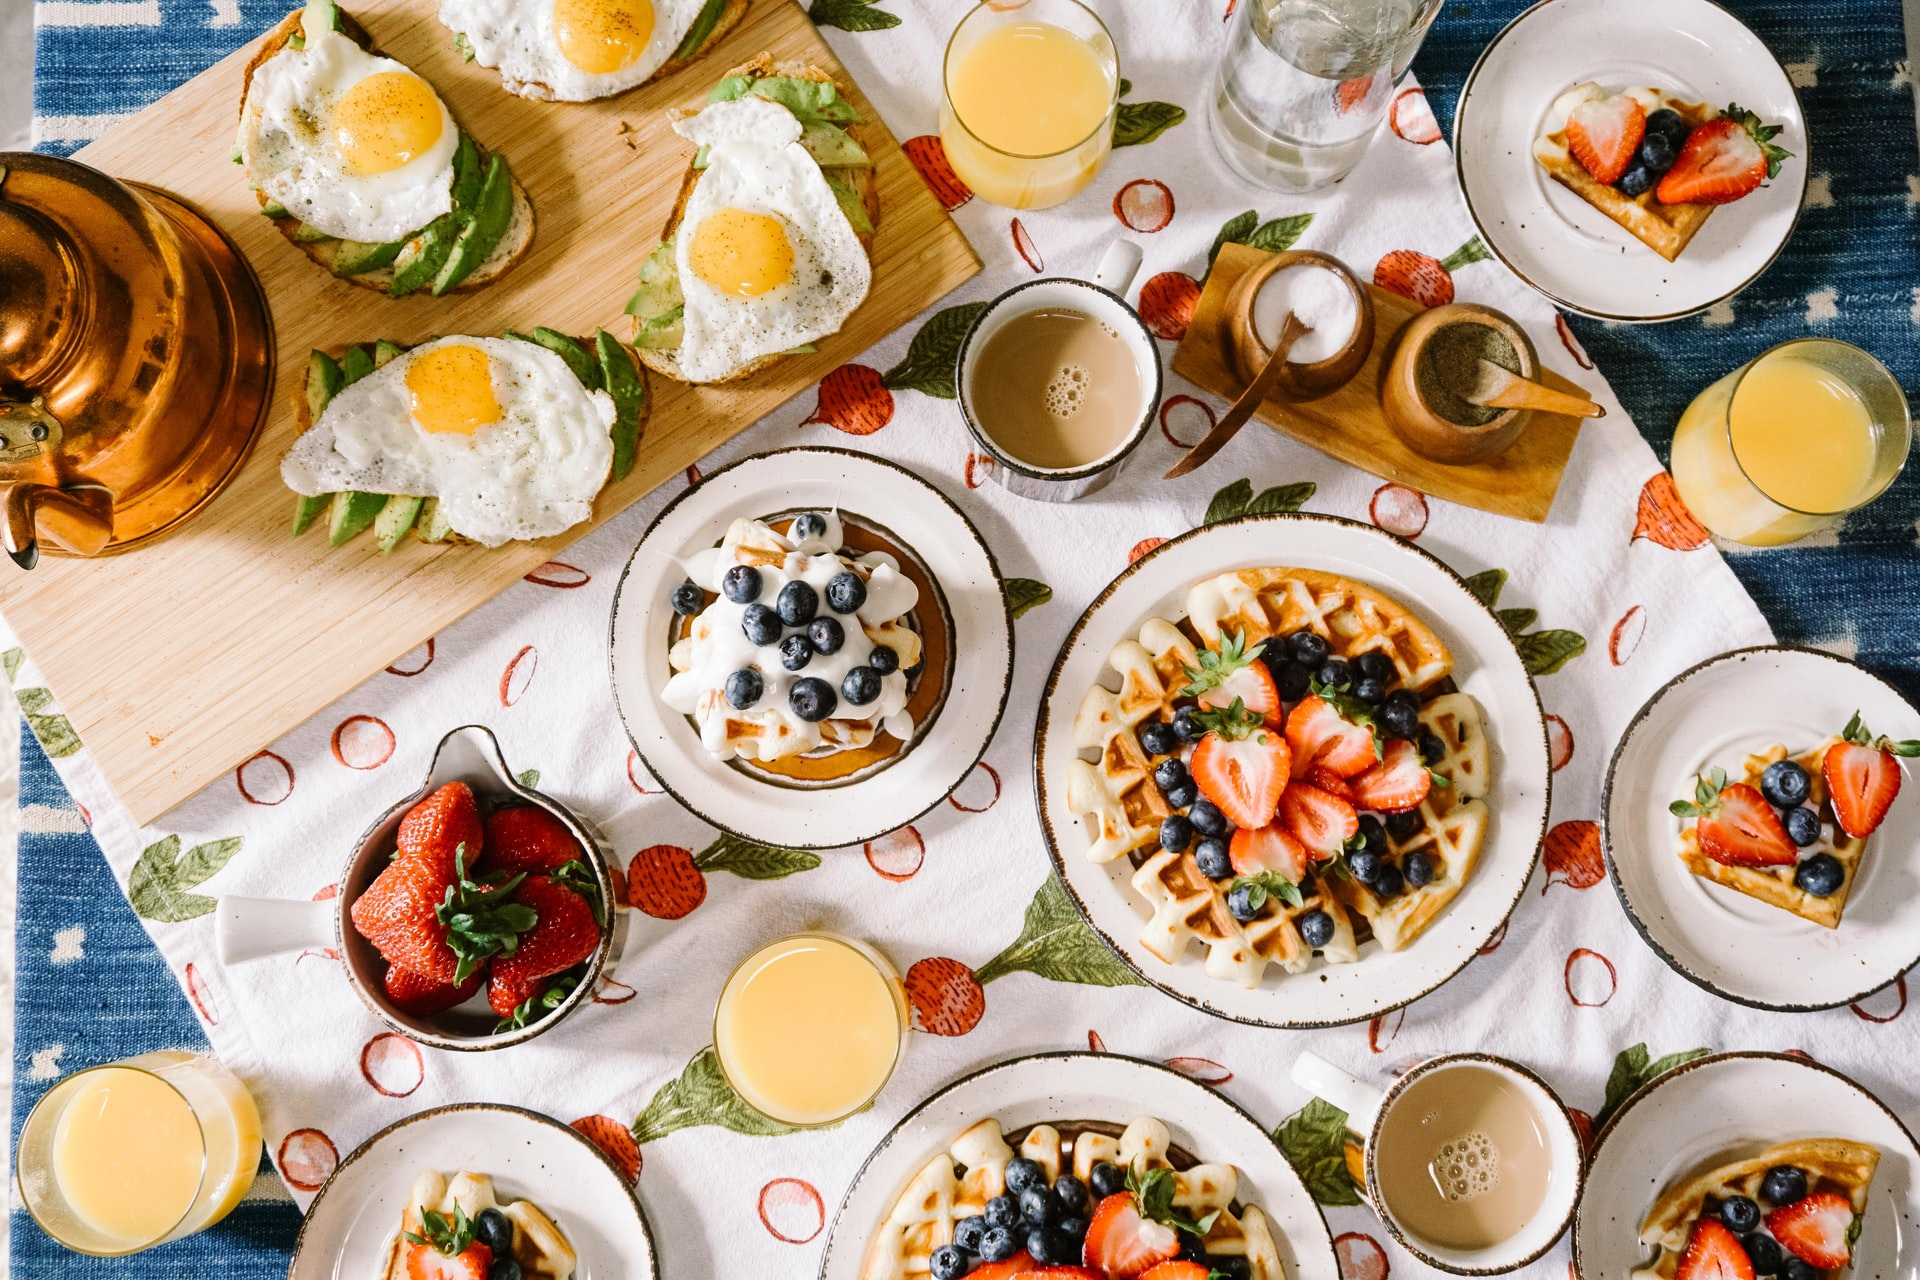 thumbnail image for blog Unconventional Brunch Recipes to Whip Up This Father's Day